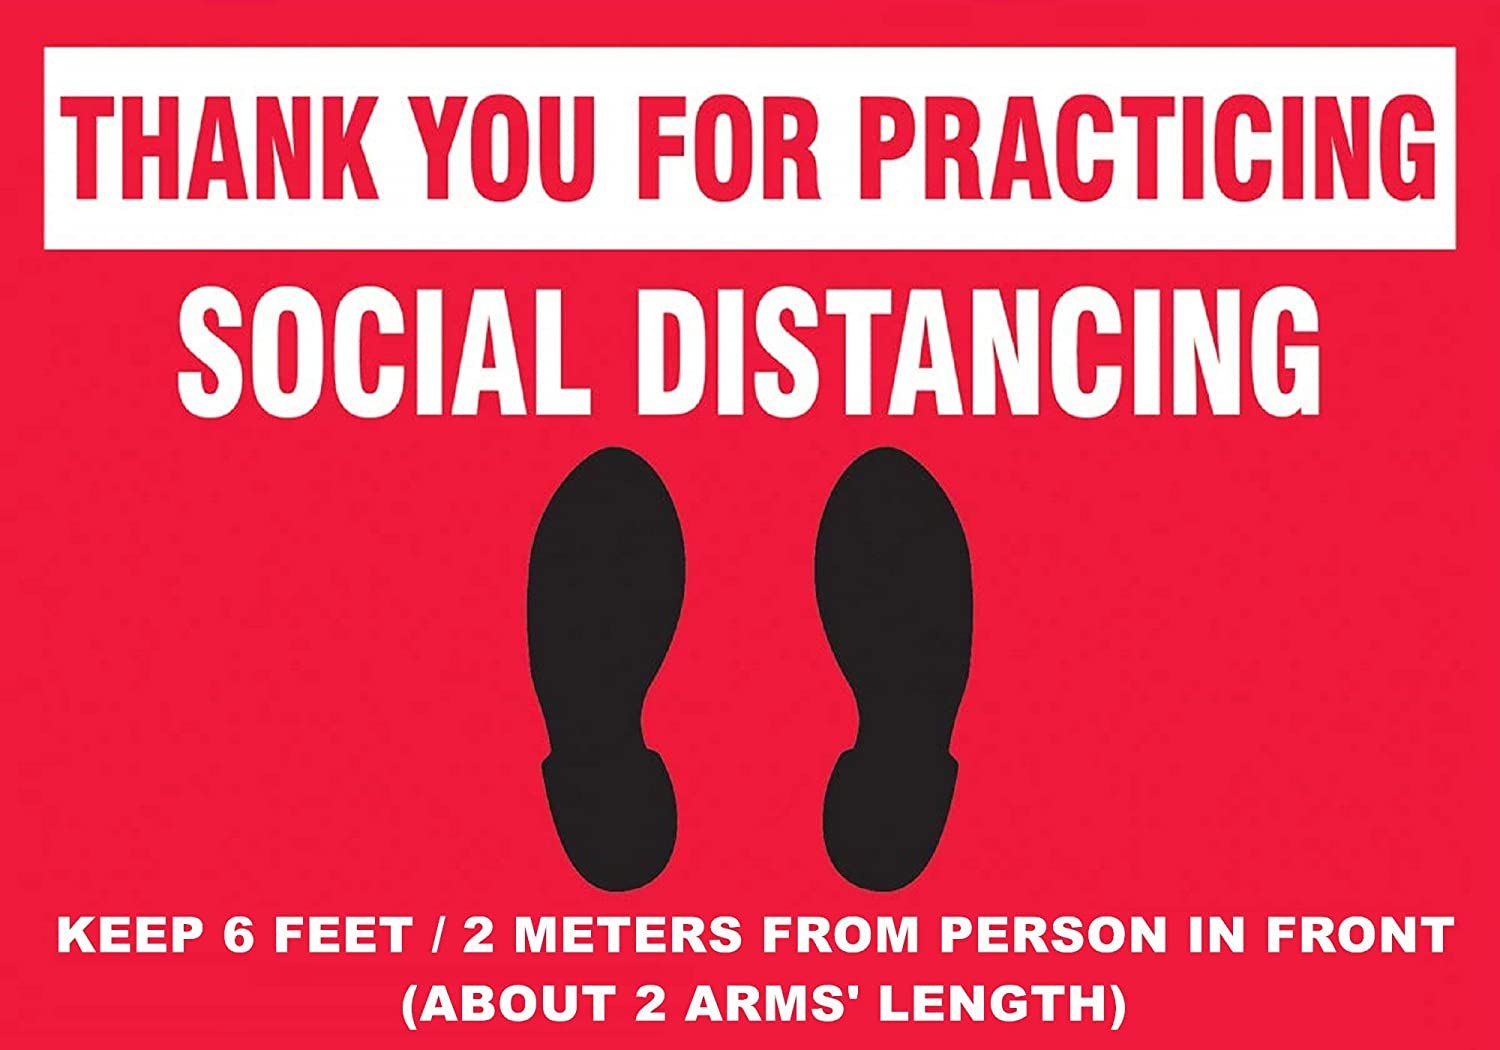 Keep Social Distance Sign 7x10/″ Self-Adhesive Vinyl PVC Sticker for Distant Socializing Practice Social Distancing Decal Minimum Safe Physical Distance Label 177.8/×254mm Case of 100 1RHA05